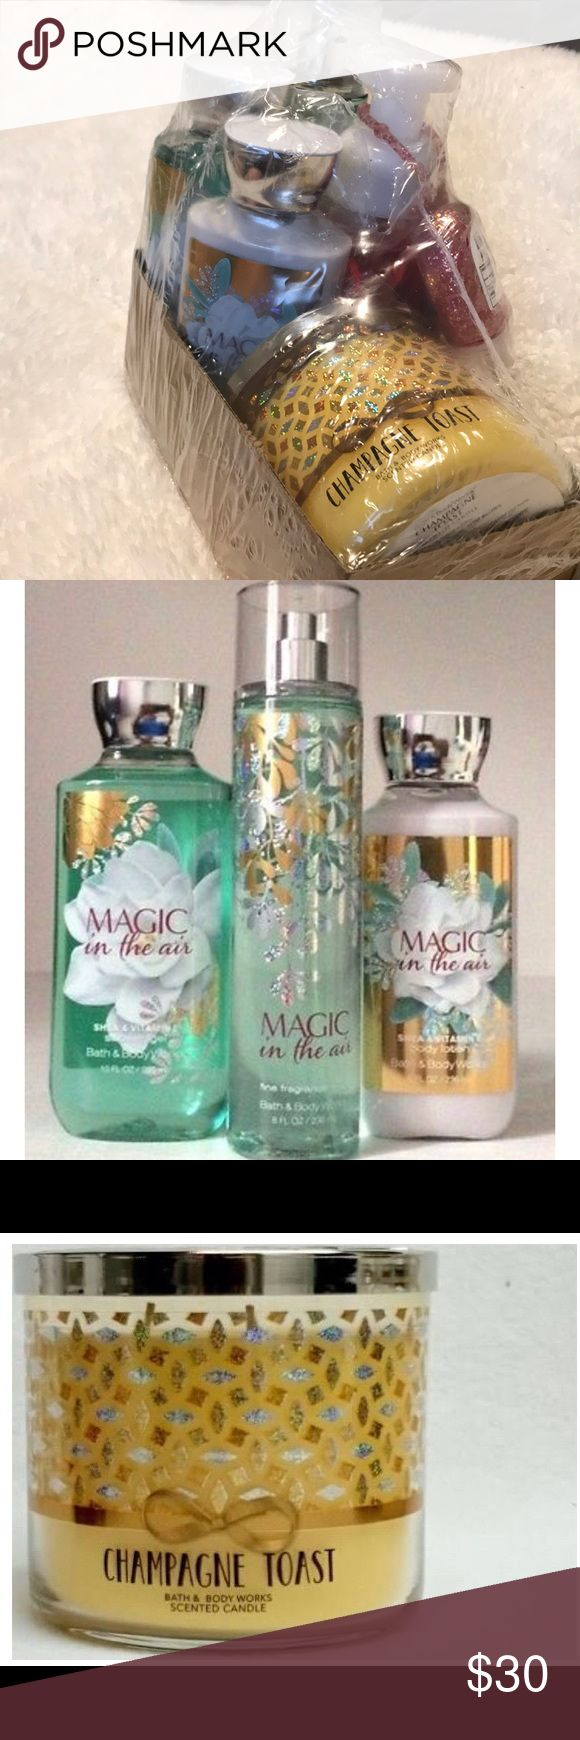 7 pc Limited Edition Bath & Body Gift Set New unused Holiday Limited Edition Bath & Body Gift Set- includes Magic In the Air shower gel, body lotion, & mist/ Champagne Toast 3-wick candle/ Thousand Wishes hand soap & hand sanitizer w/gold and pink glitter keychain holder Makeup